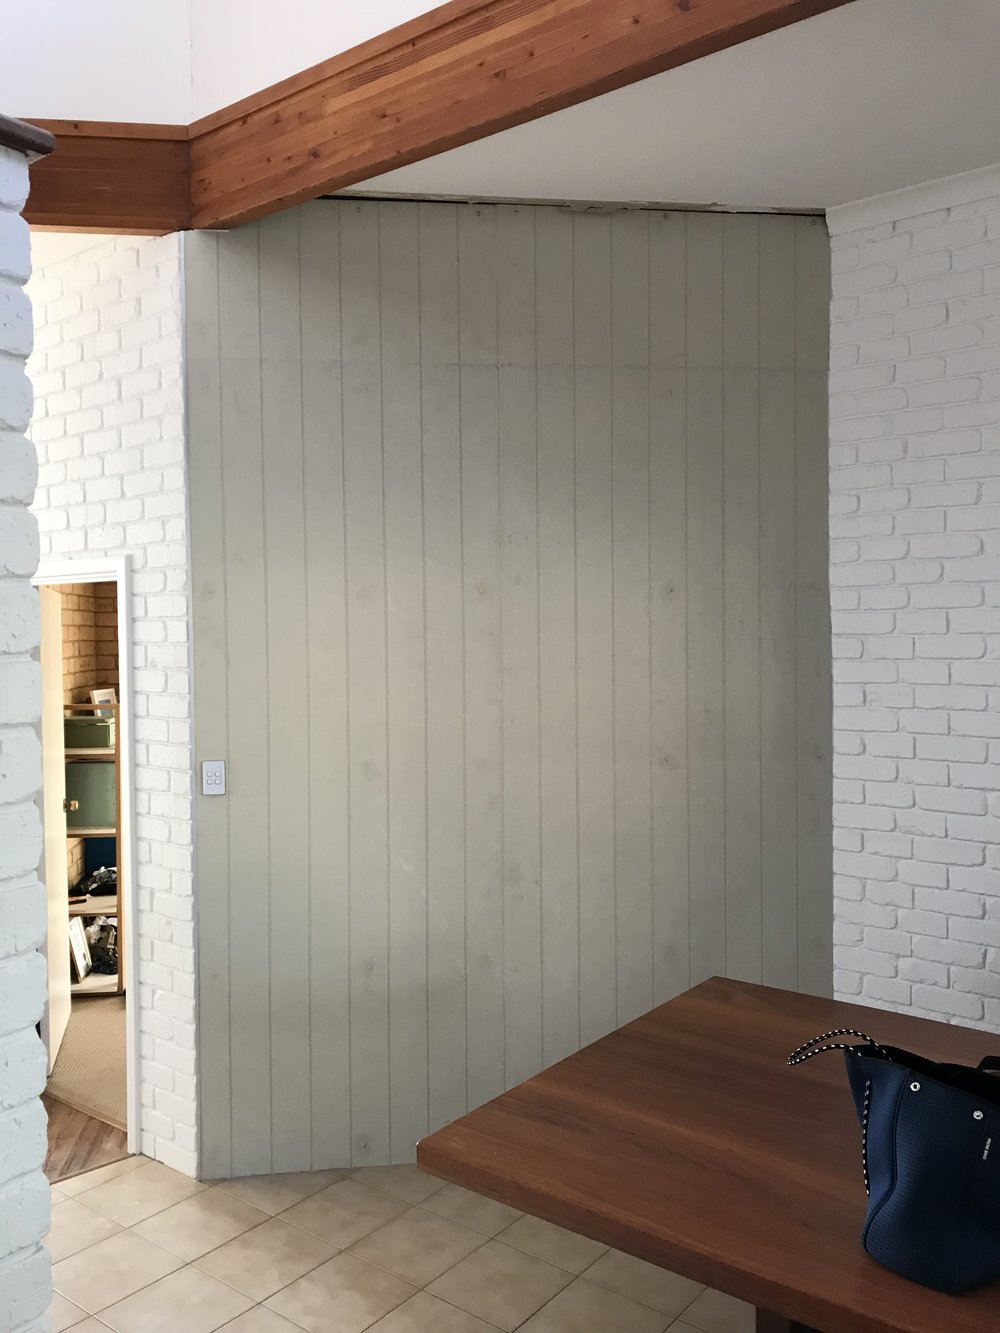 ...and the cladding installation (pre painting) creates a feature and interest in the space and gives a subtle nod to the beachside location.